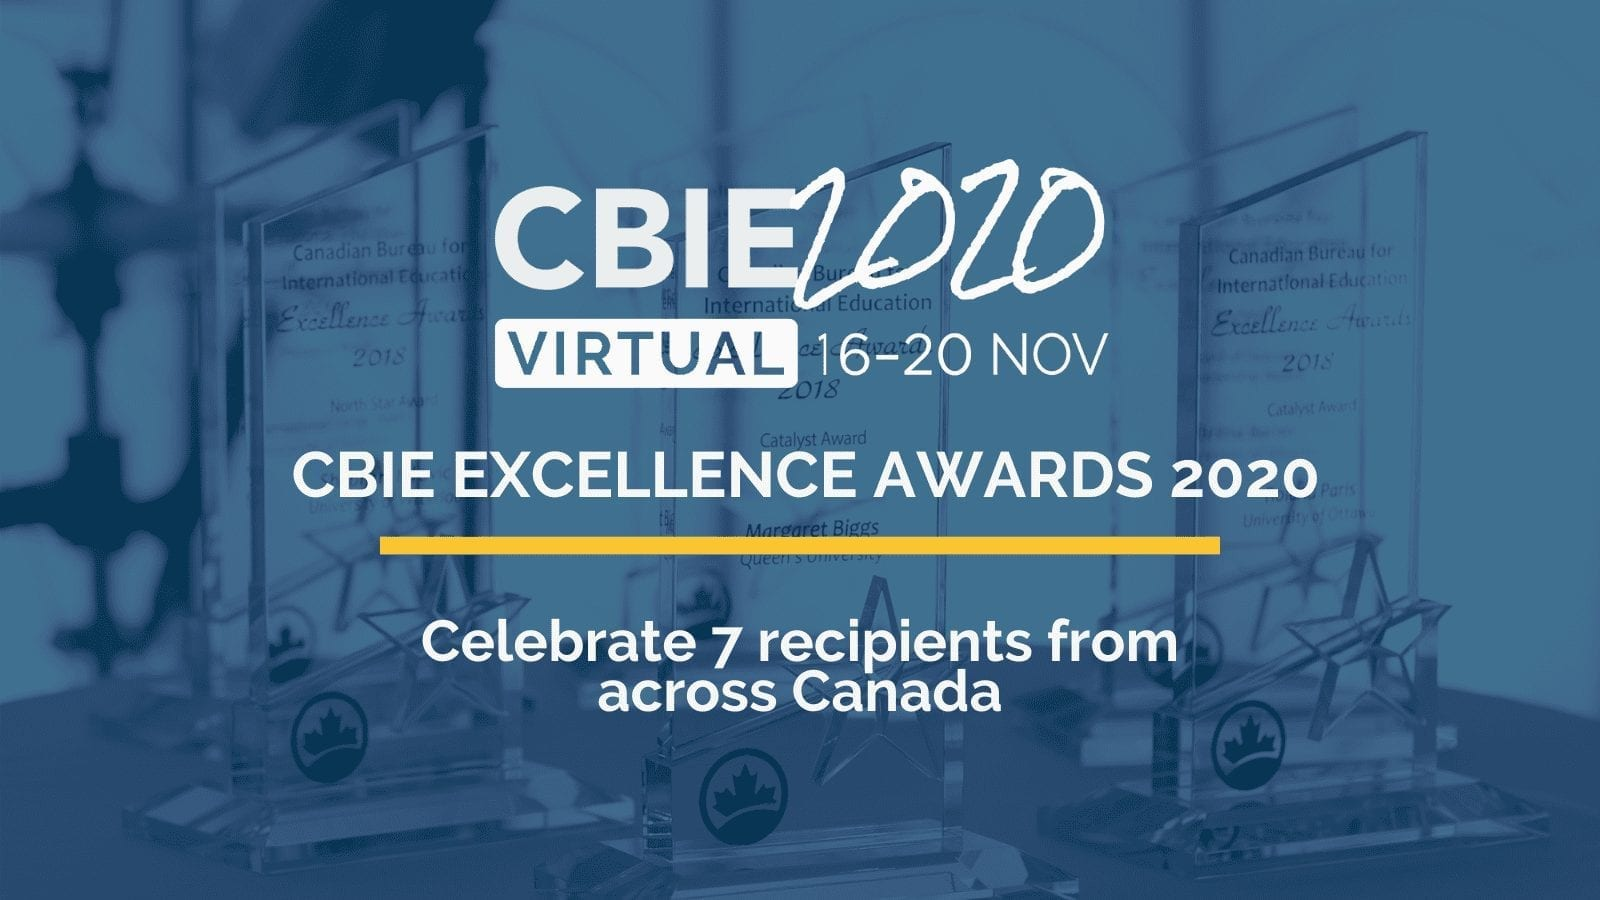 Canadian Bureau for International Education (CBIE) announces the winners of its 2020 Excellence Awards